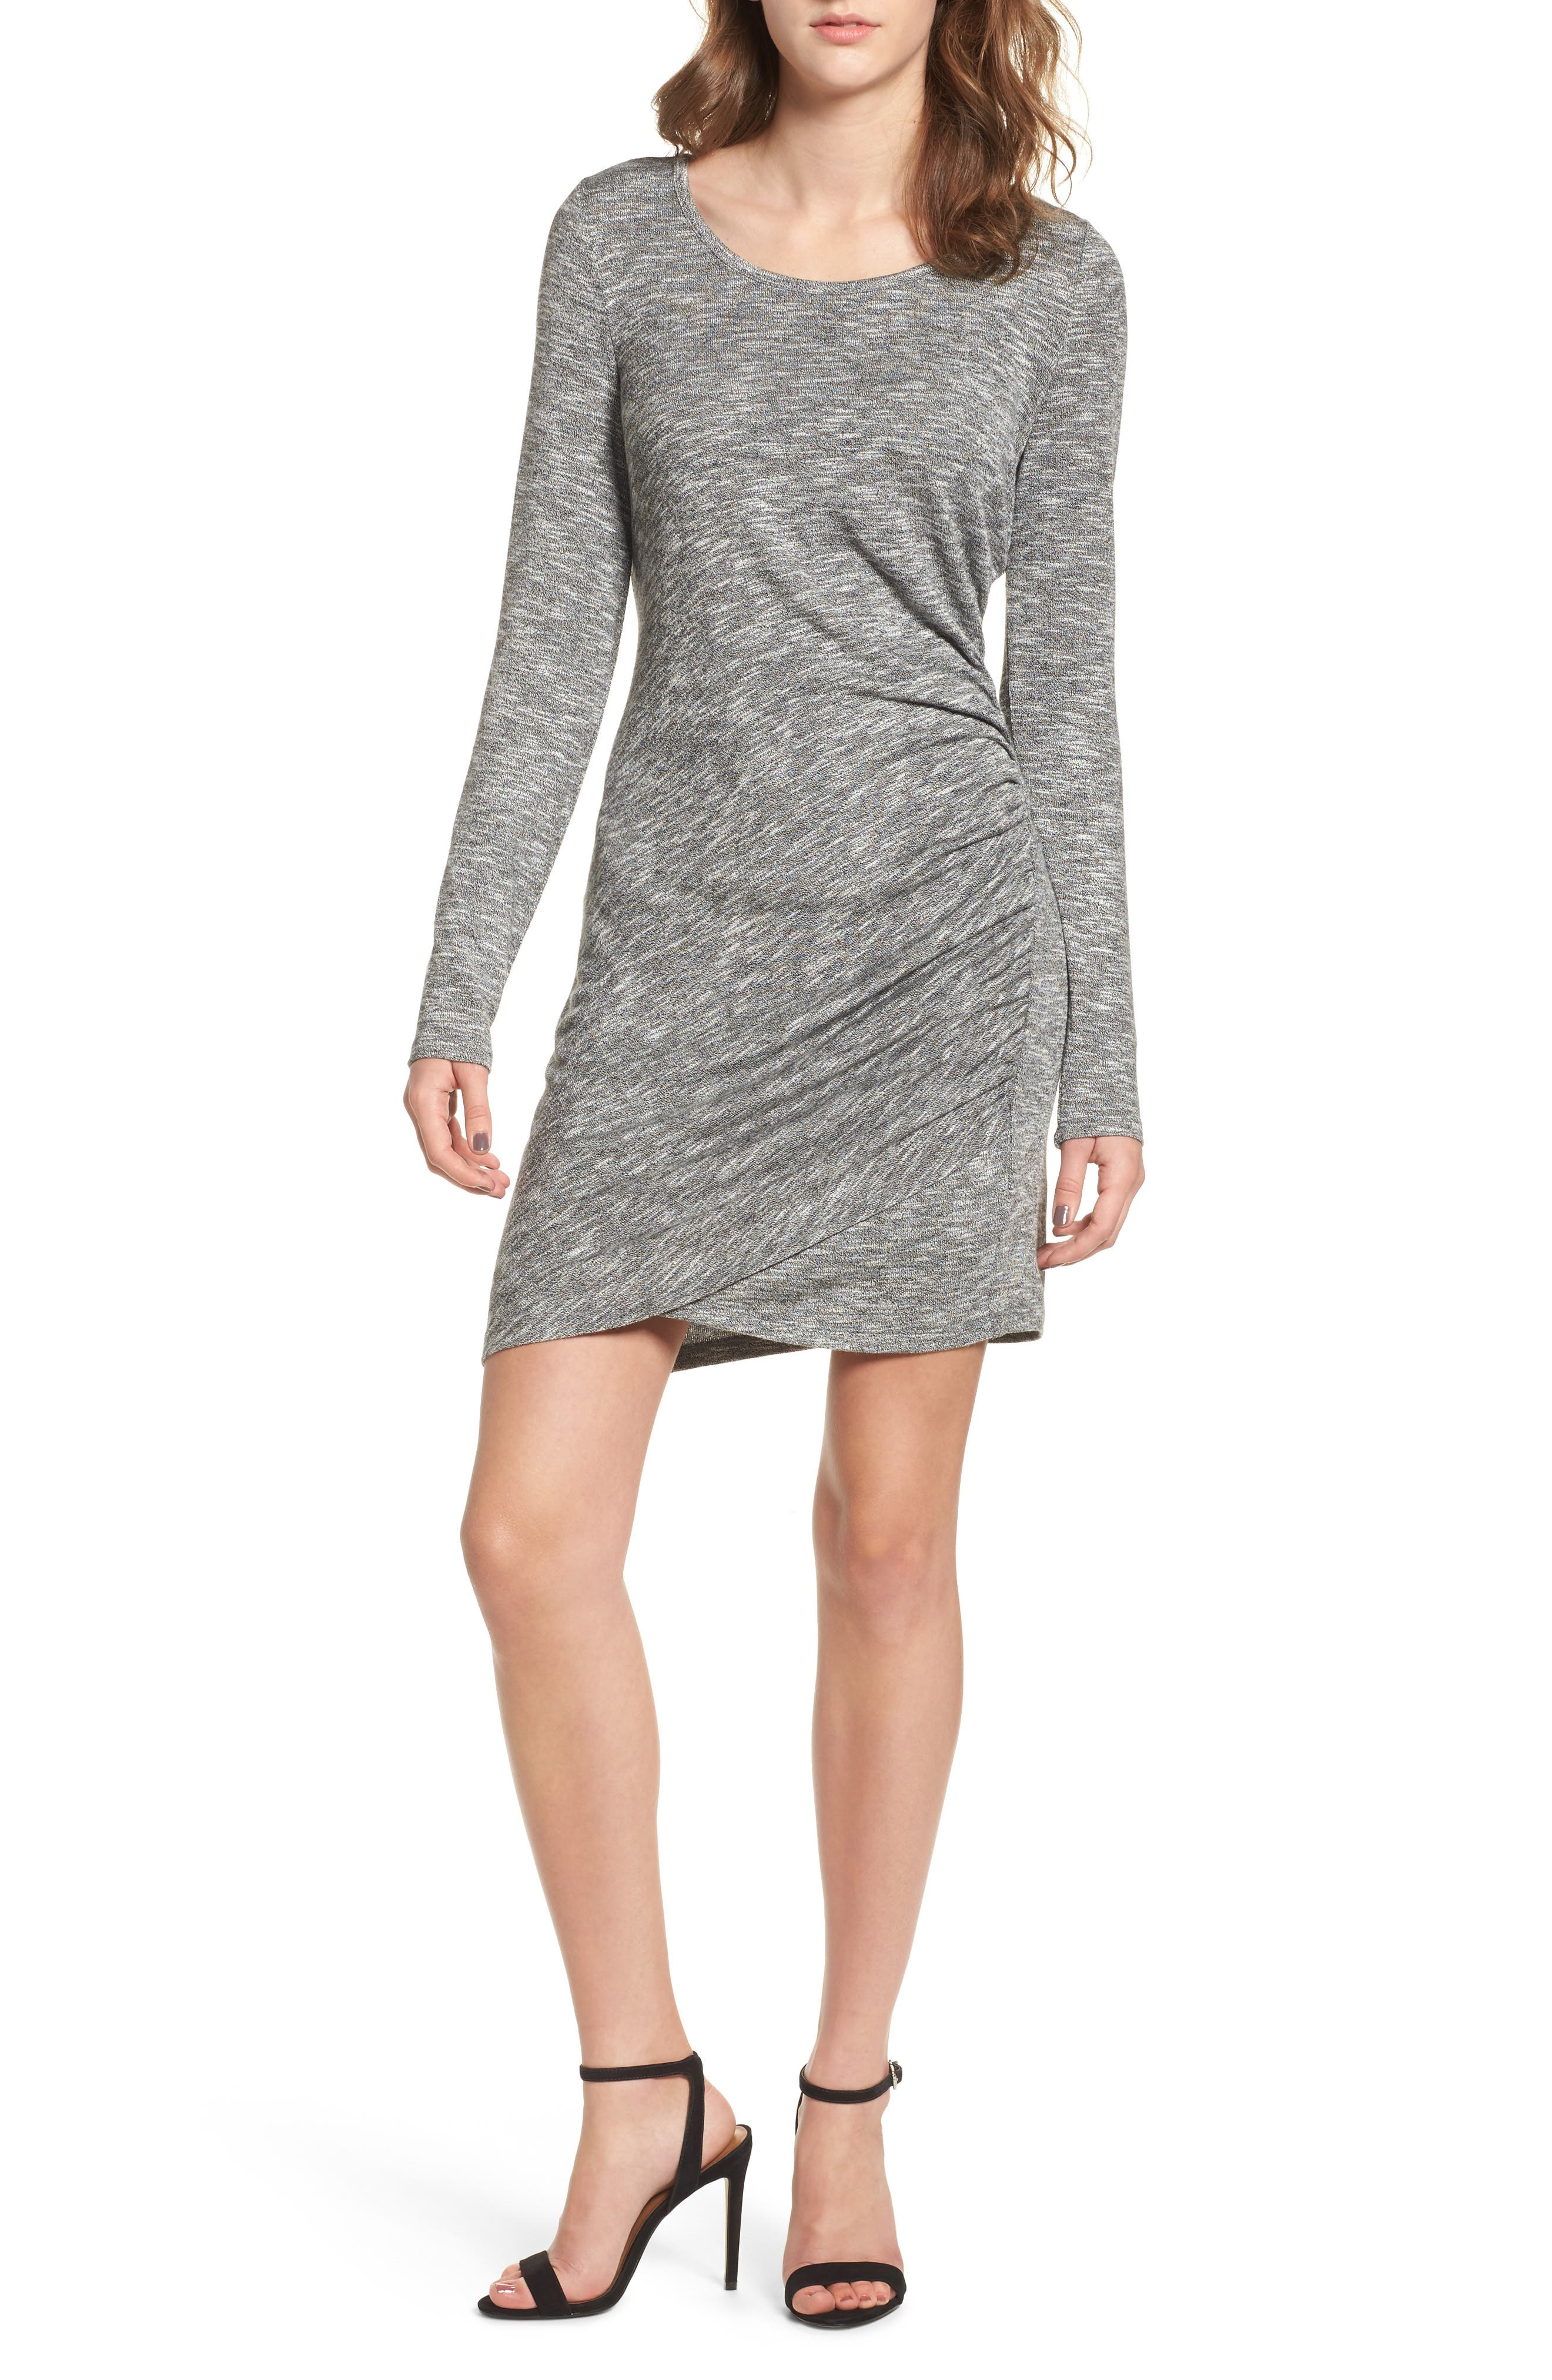 Ruched Knit Dress,                         Main,                         color, 020